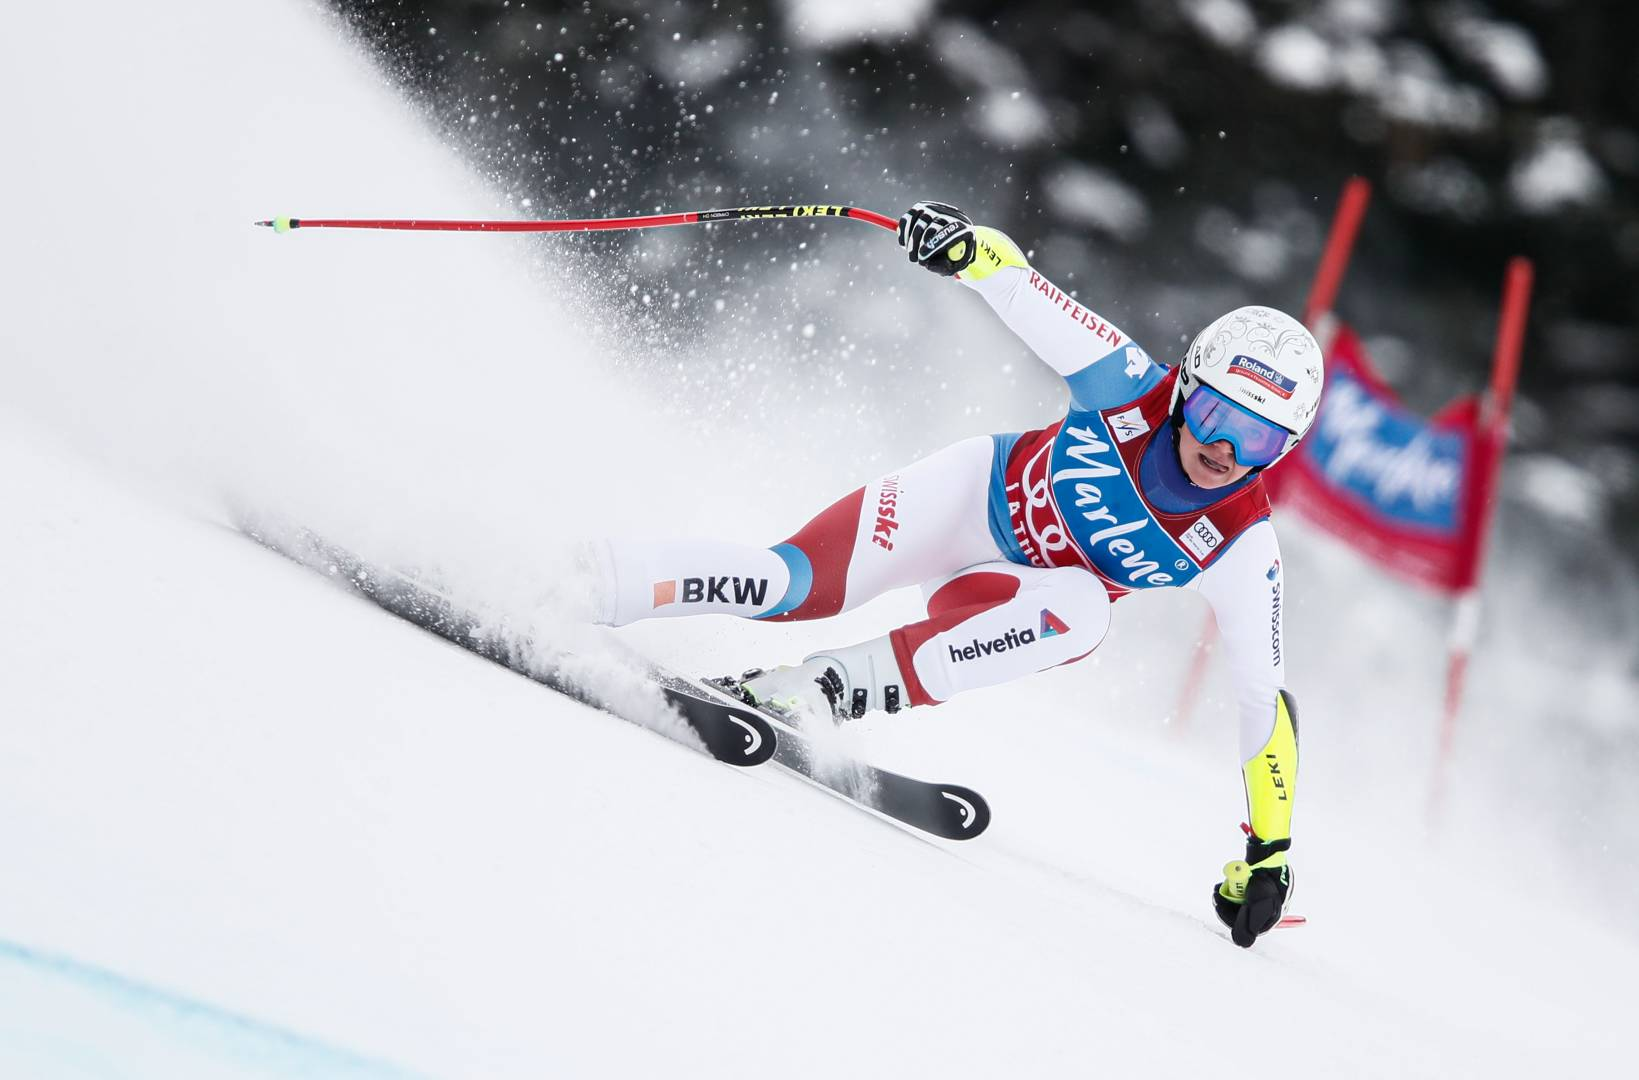 superg corinnesuter sui 3place worldcuplathuile 29022020 phcredits pentaphoto